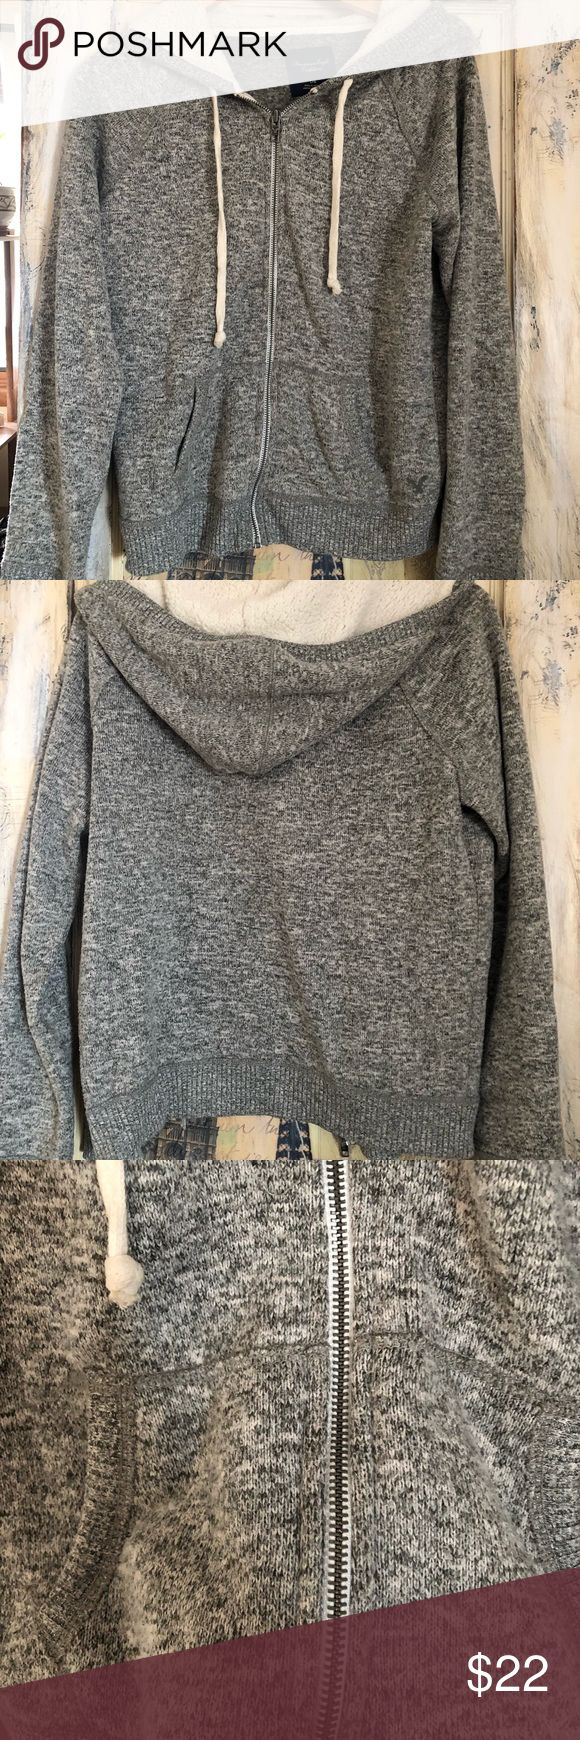 American Eagle zip up hoodie American Eagle Soft, neutral zip up hoodie  with a fleece lined hood. A great Christmas gift for a teen. Size large but a smaller large. American Eagle Outfitters Sweaters